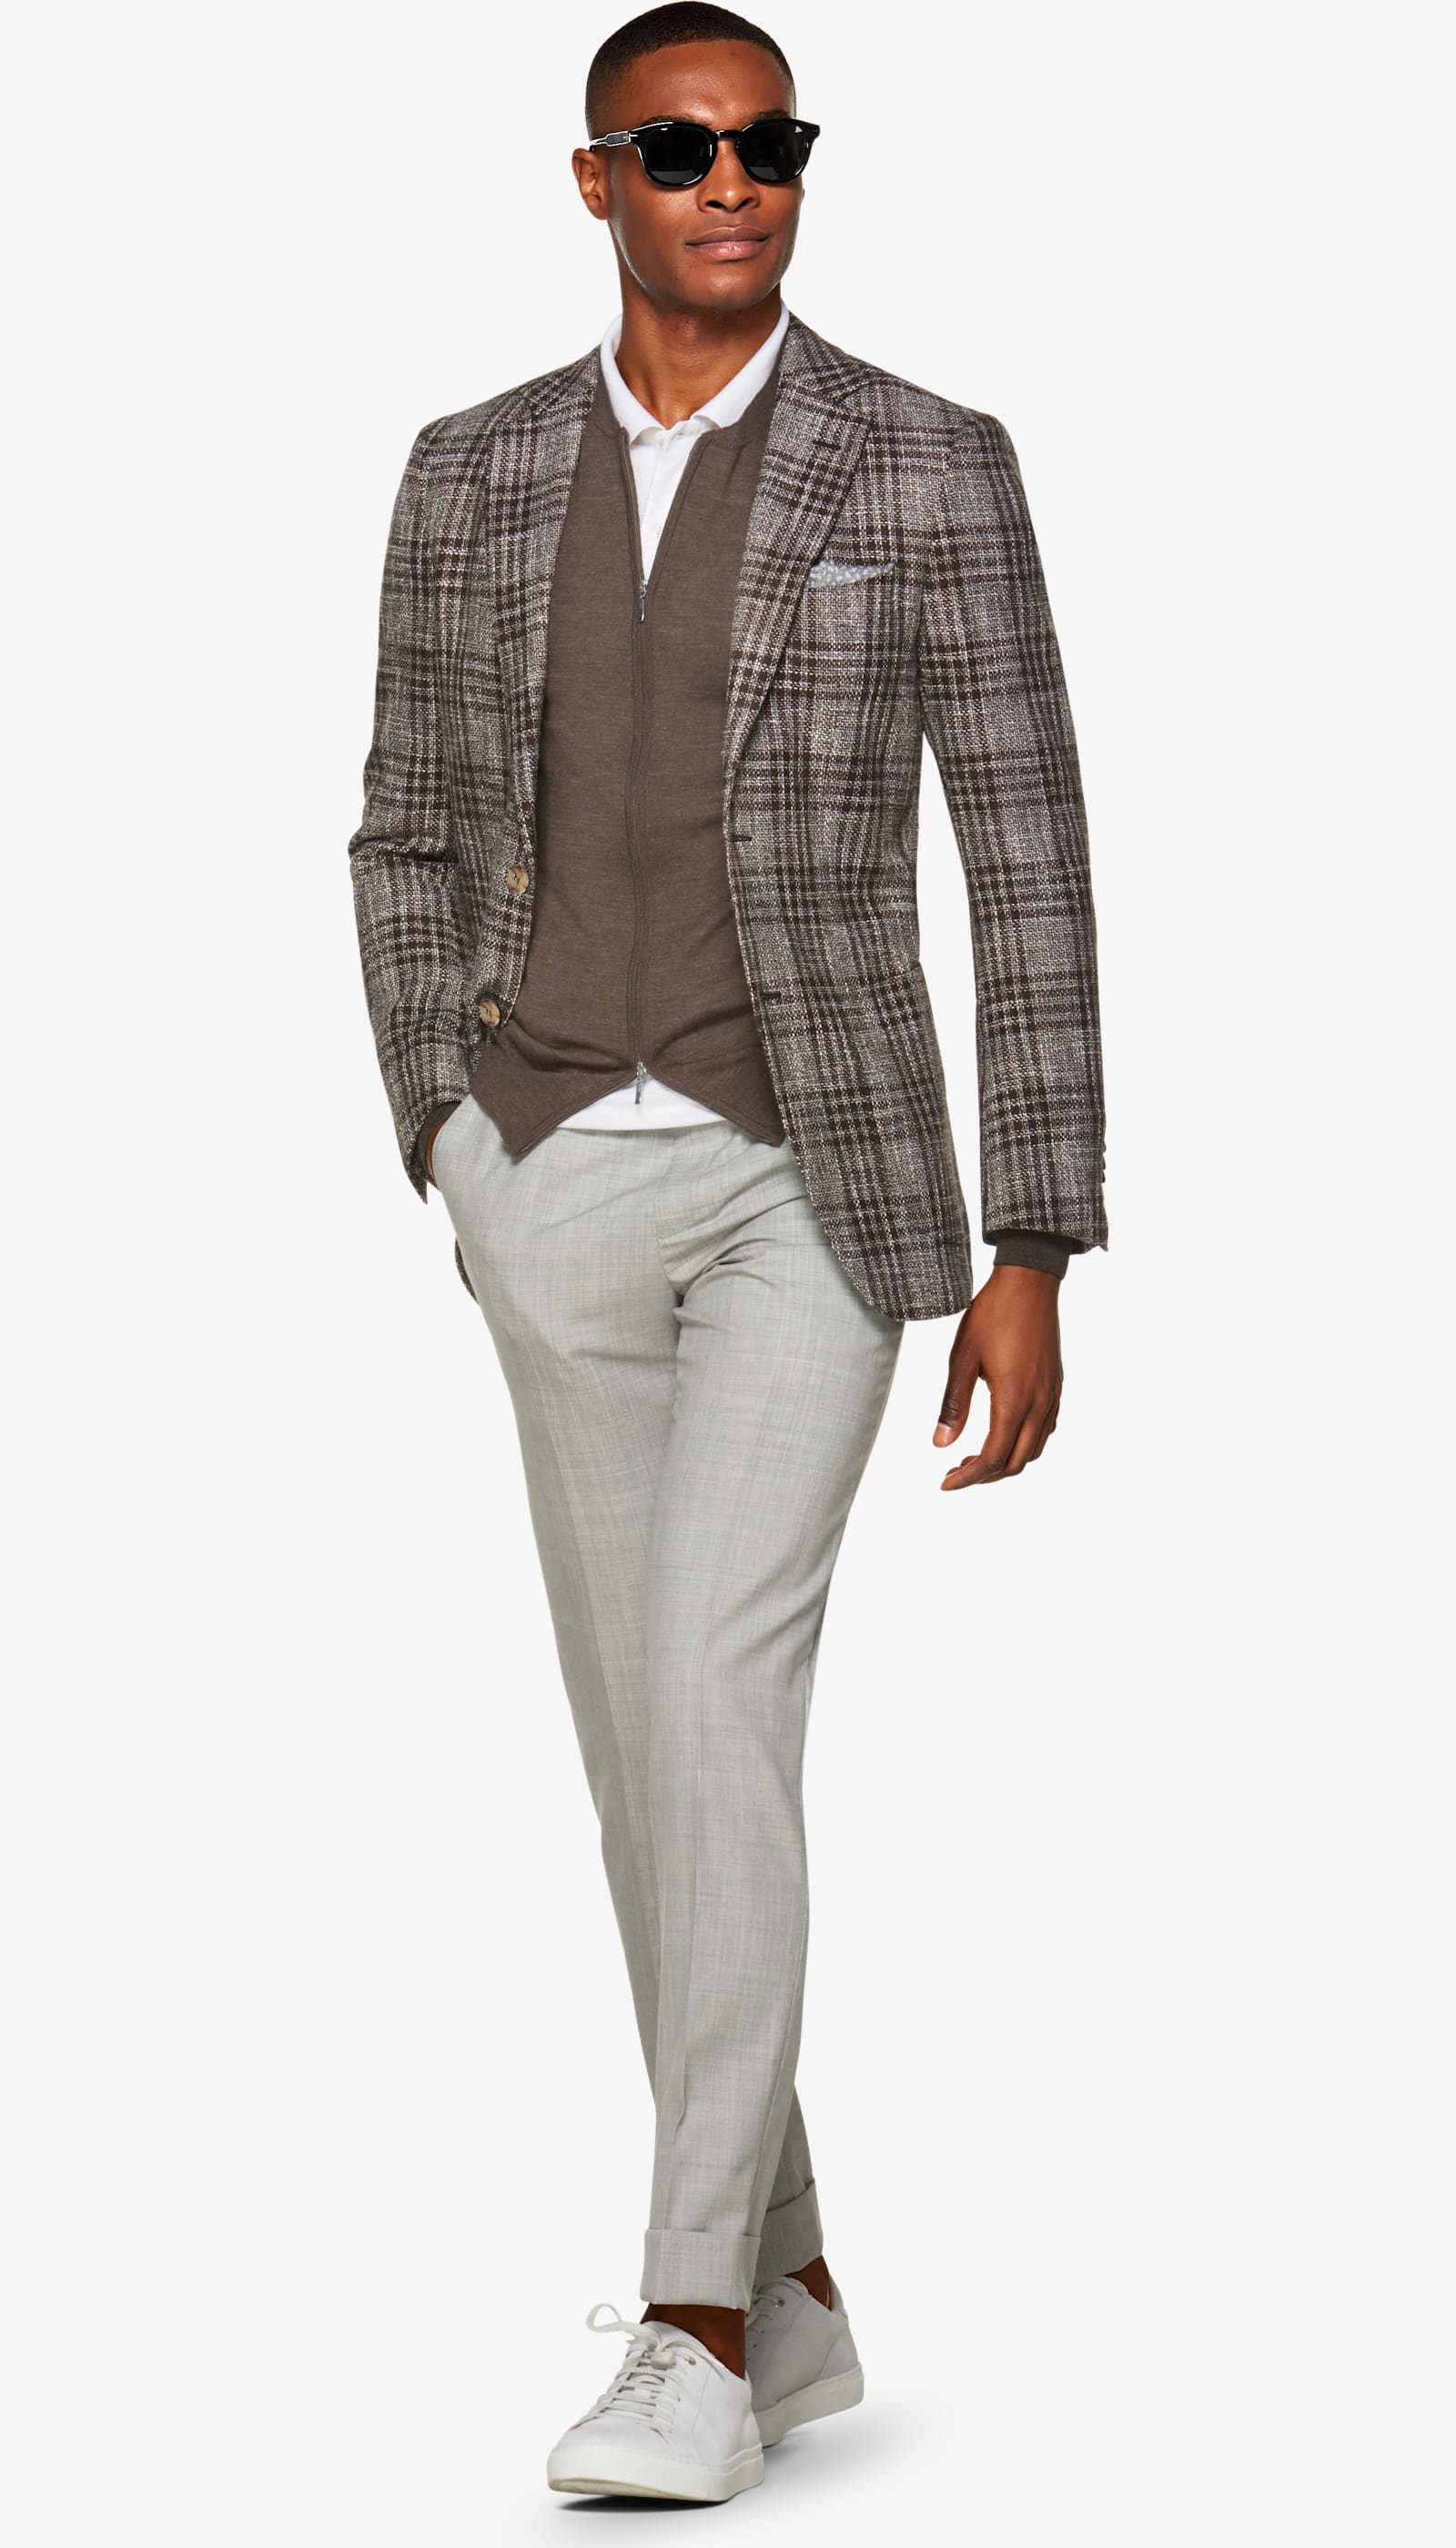 Havana Brown Check Jacket - Suit Supply crushes it with a wool, linen, and cotton blend.